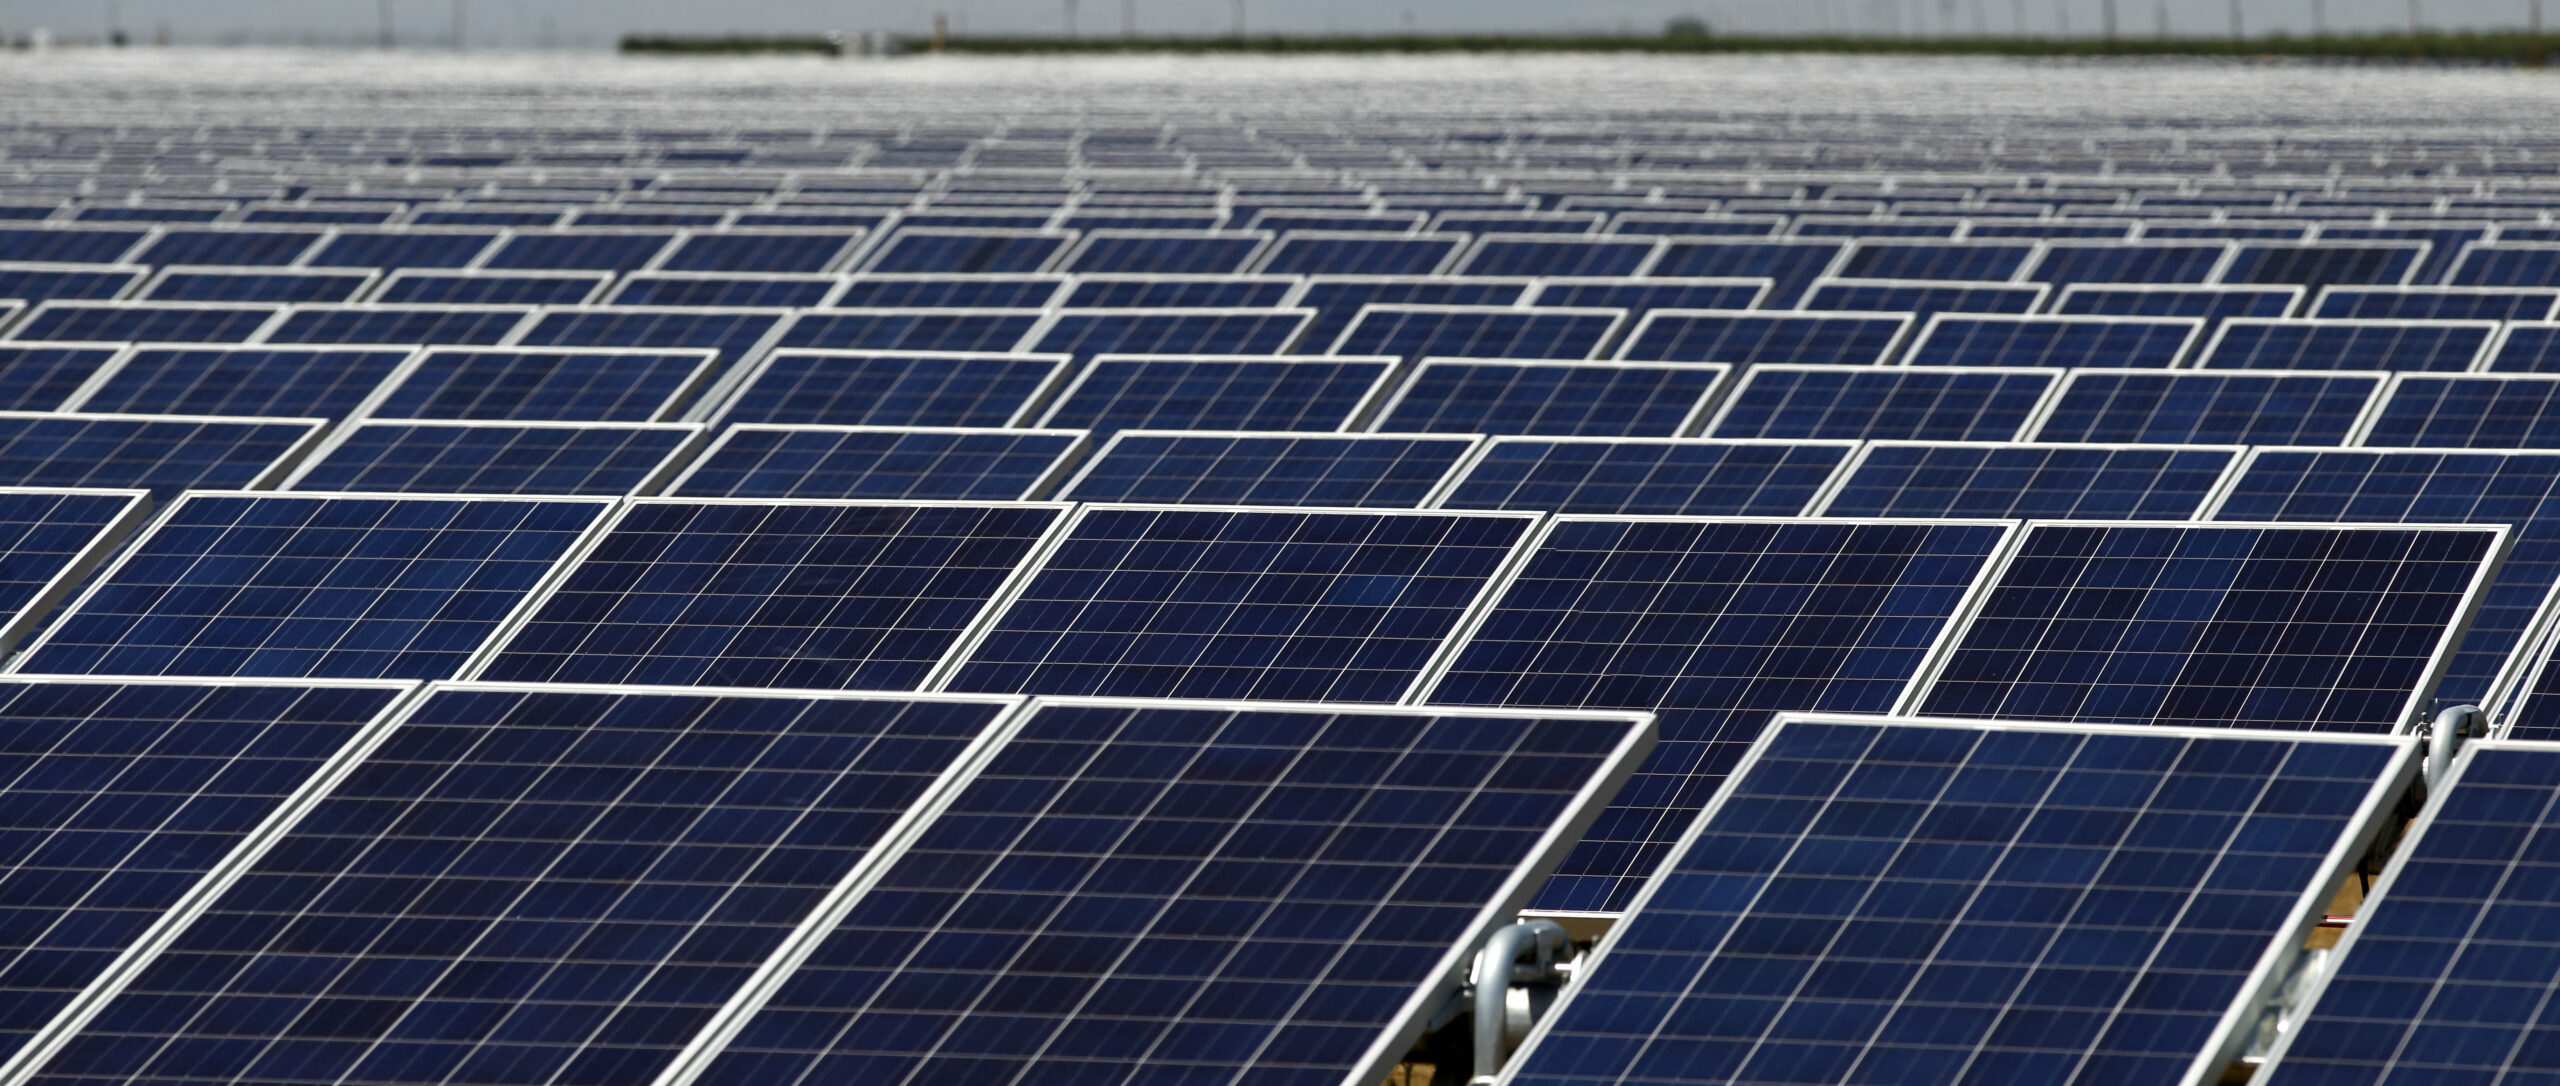 Canadian Solar Subsidiary Recurrent Energy Signs Power